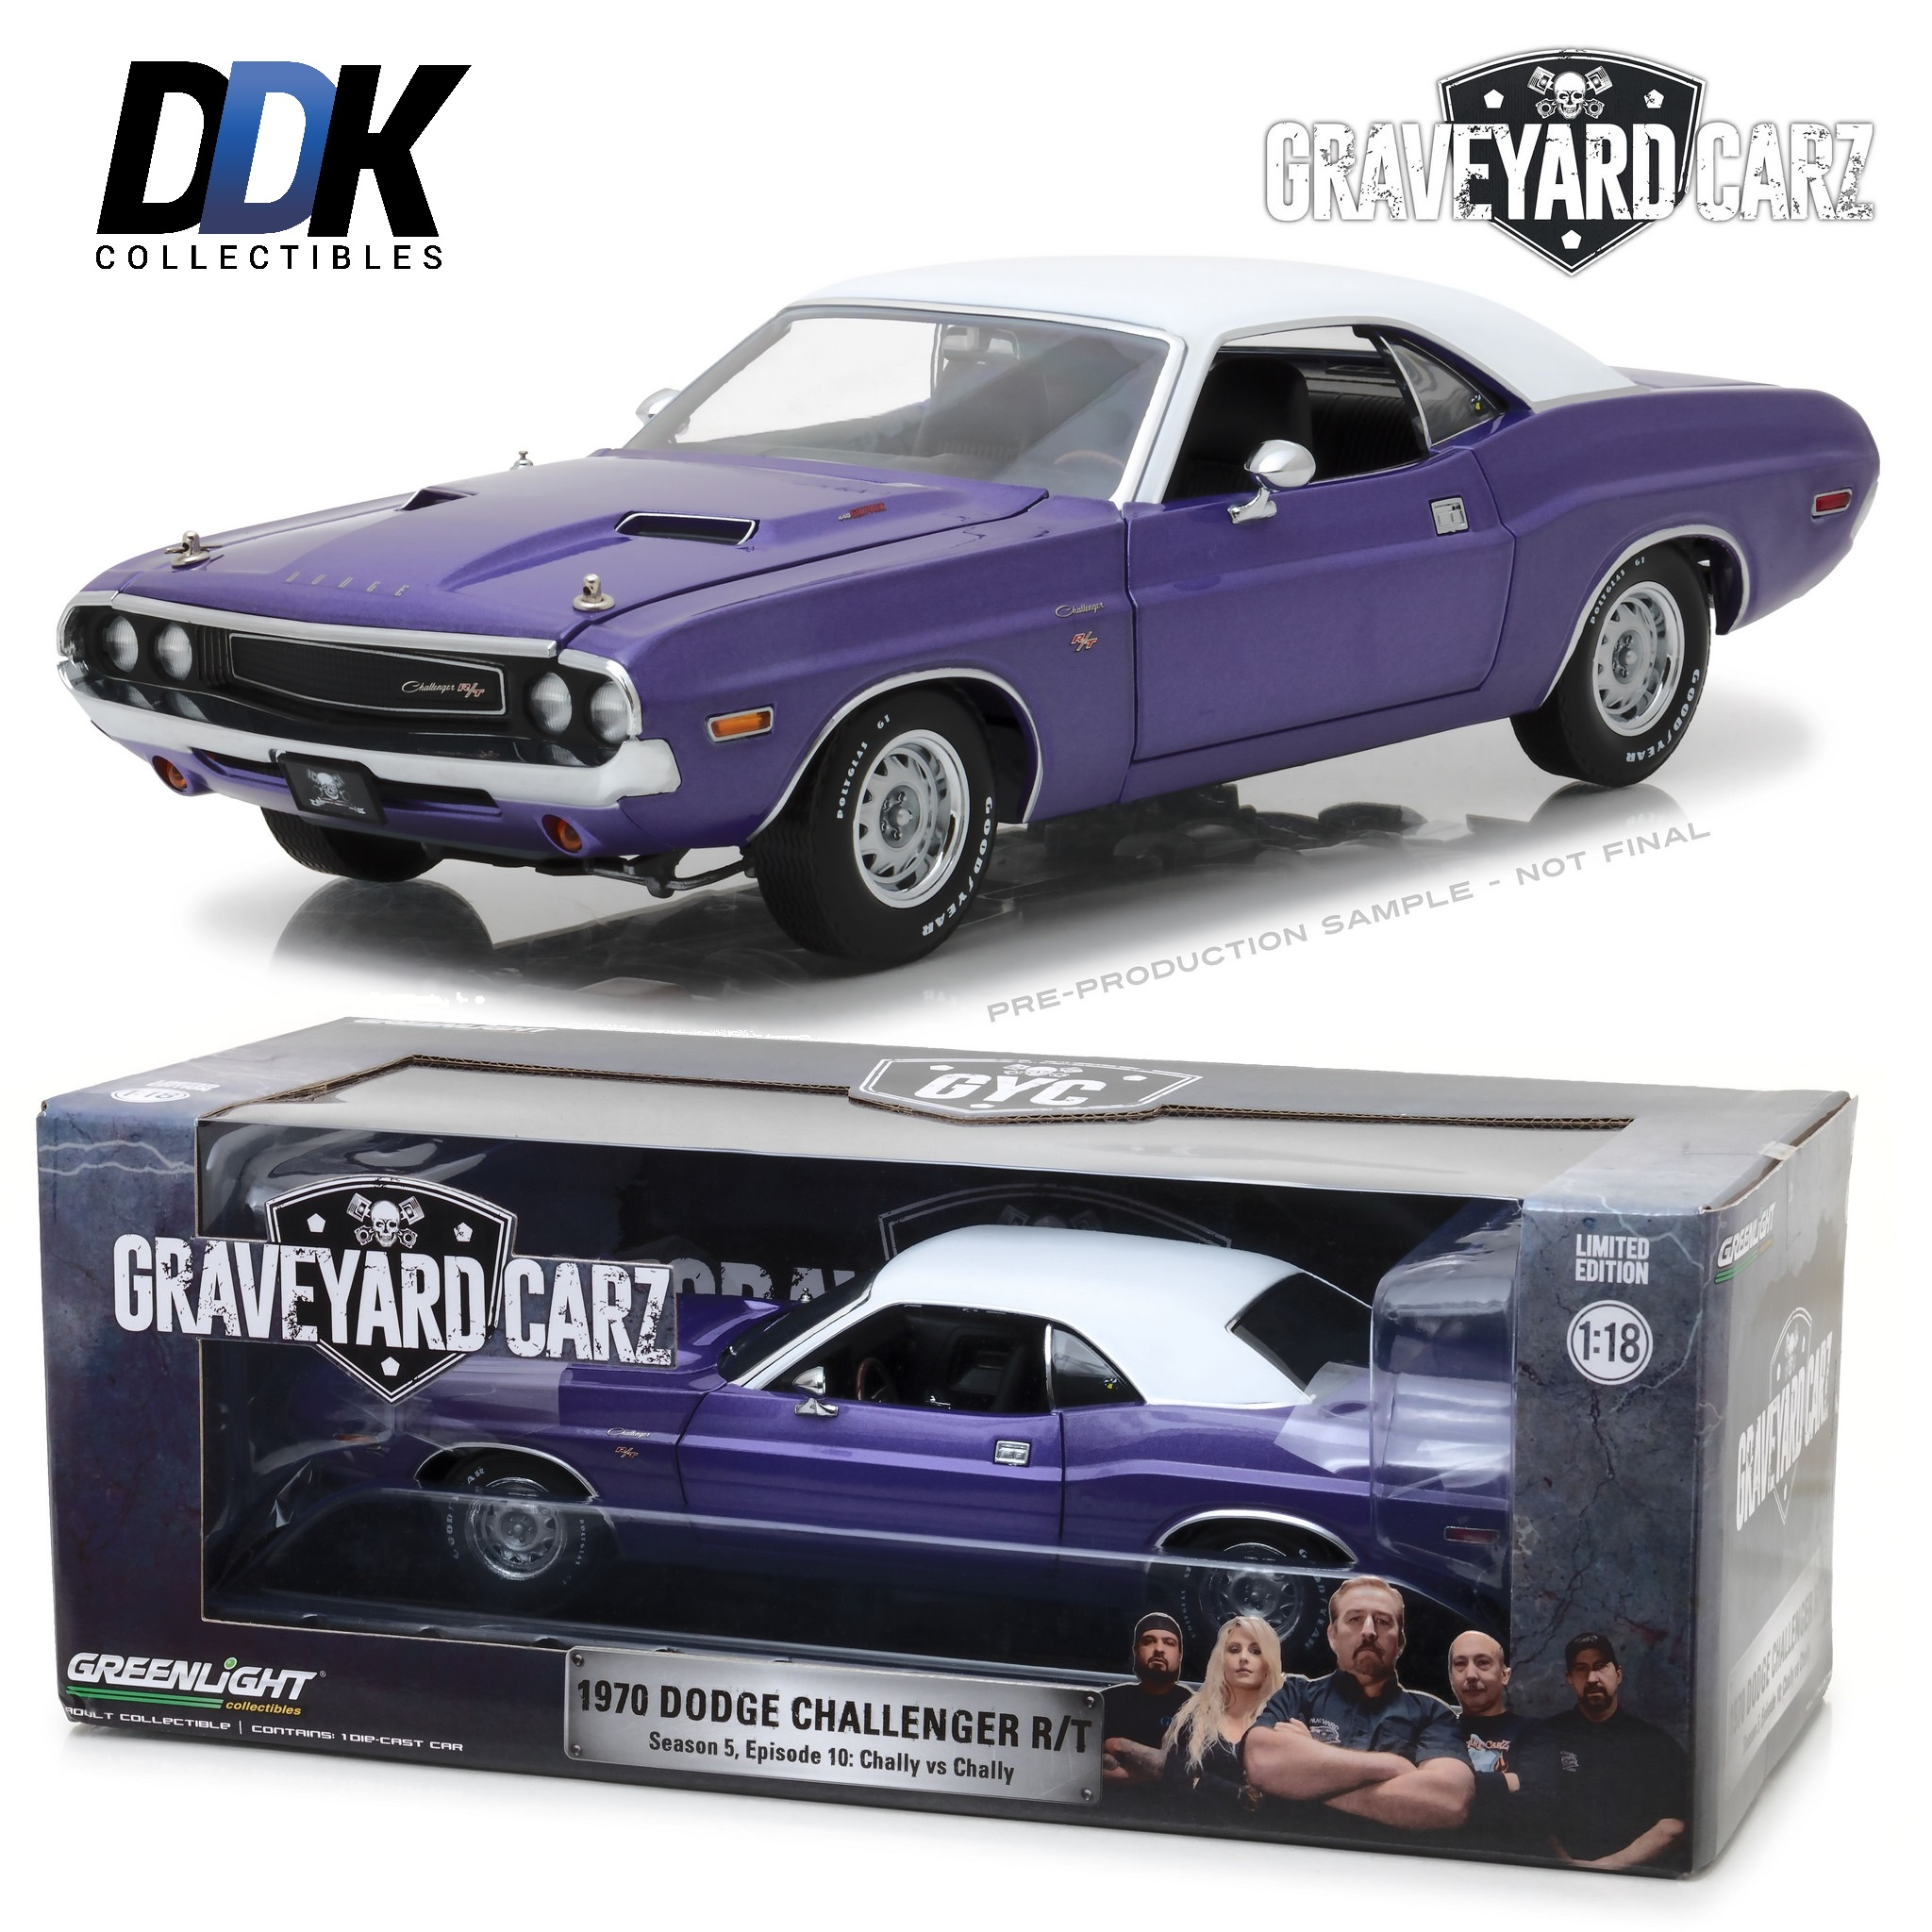 Cars for Sale by Graveyard Carz Elegant Greenlight 1355 1970 Dodge Challenger Rt Graveyard Carz Cast